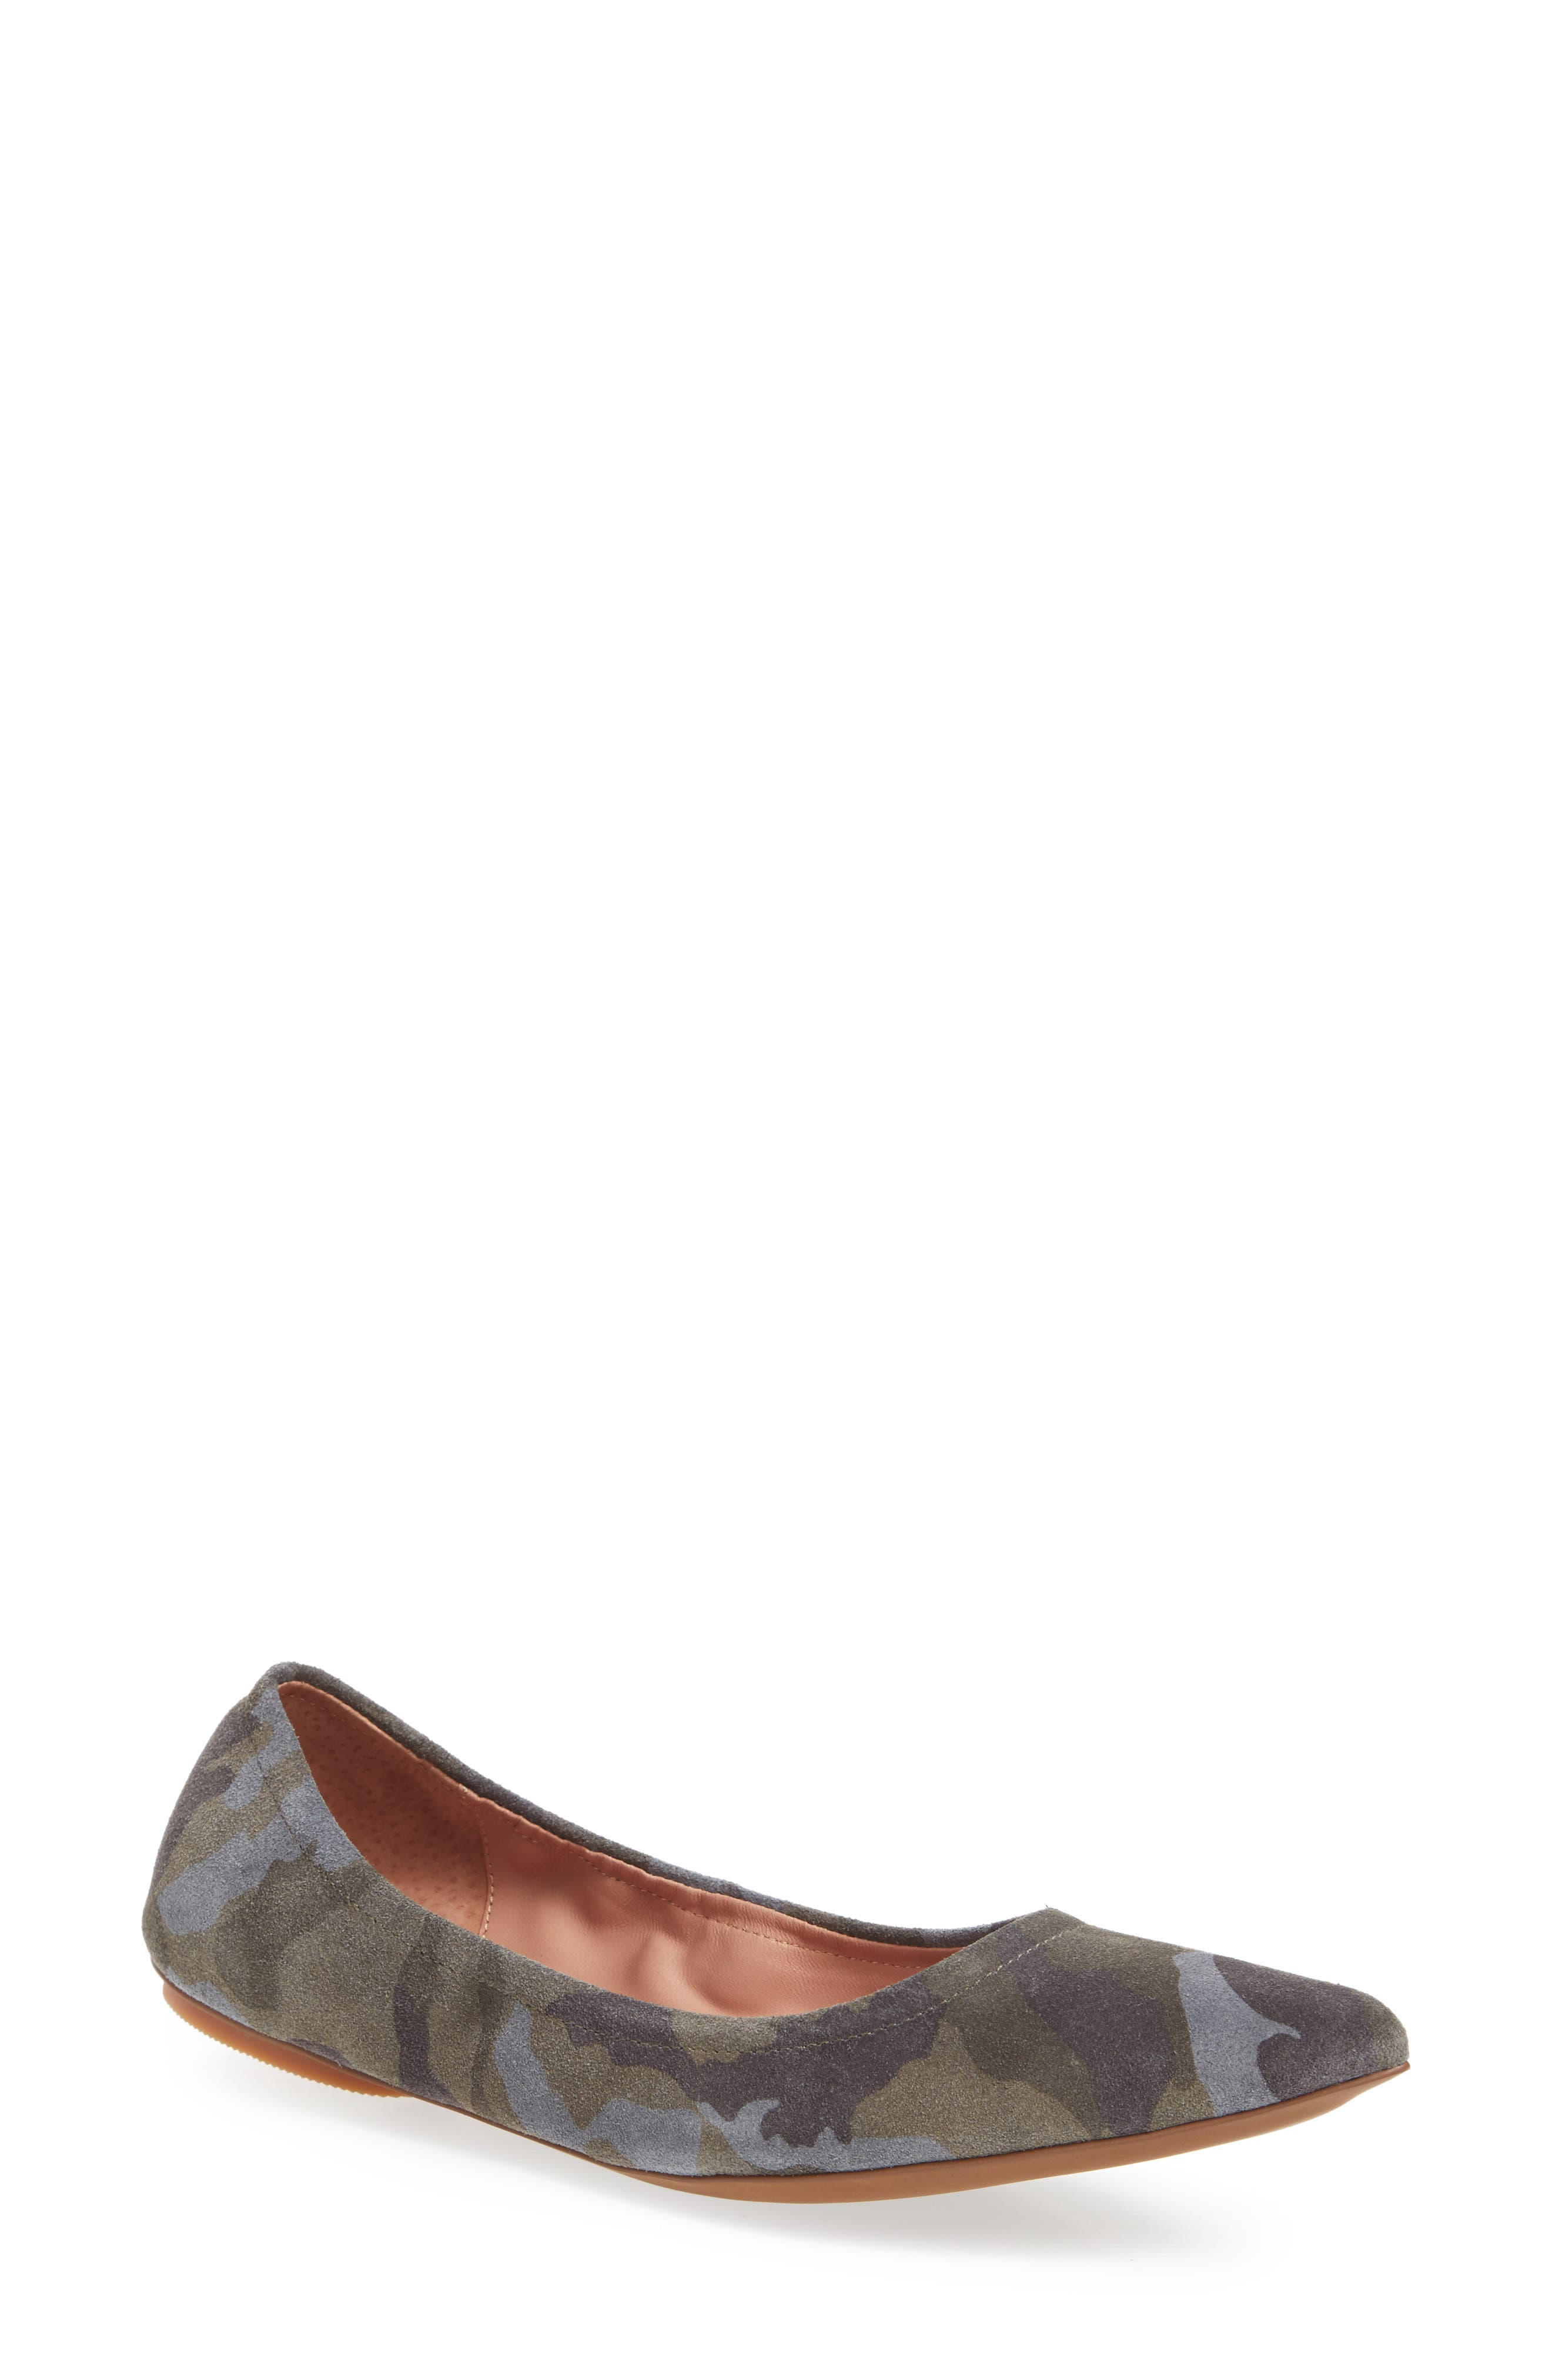 Nico Pointy Toe Flat,                         Main,                         color, Camouflage Suede